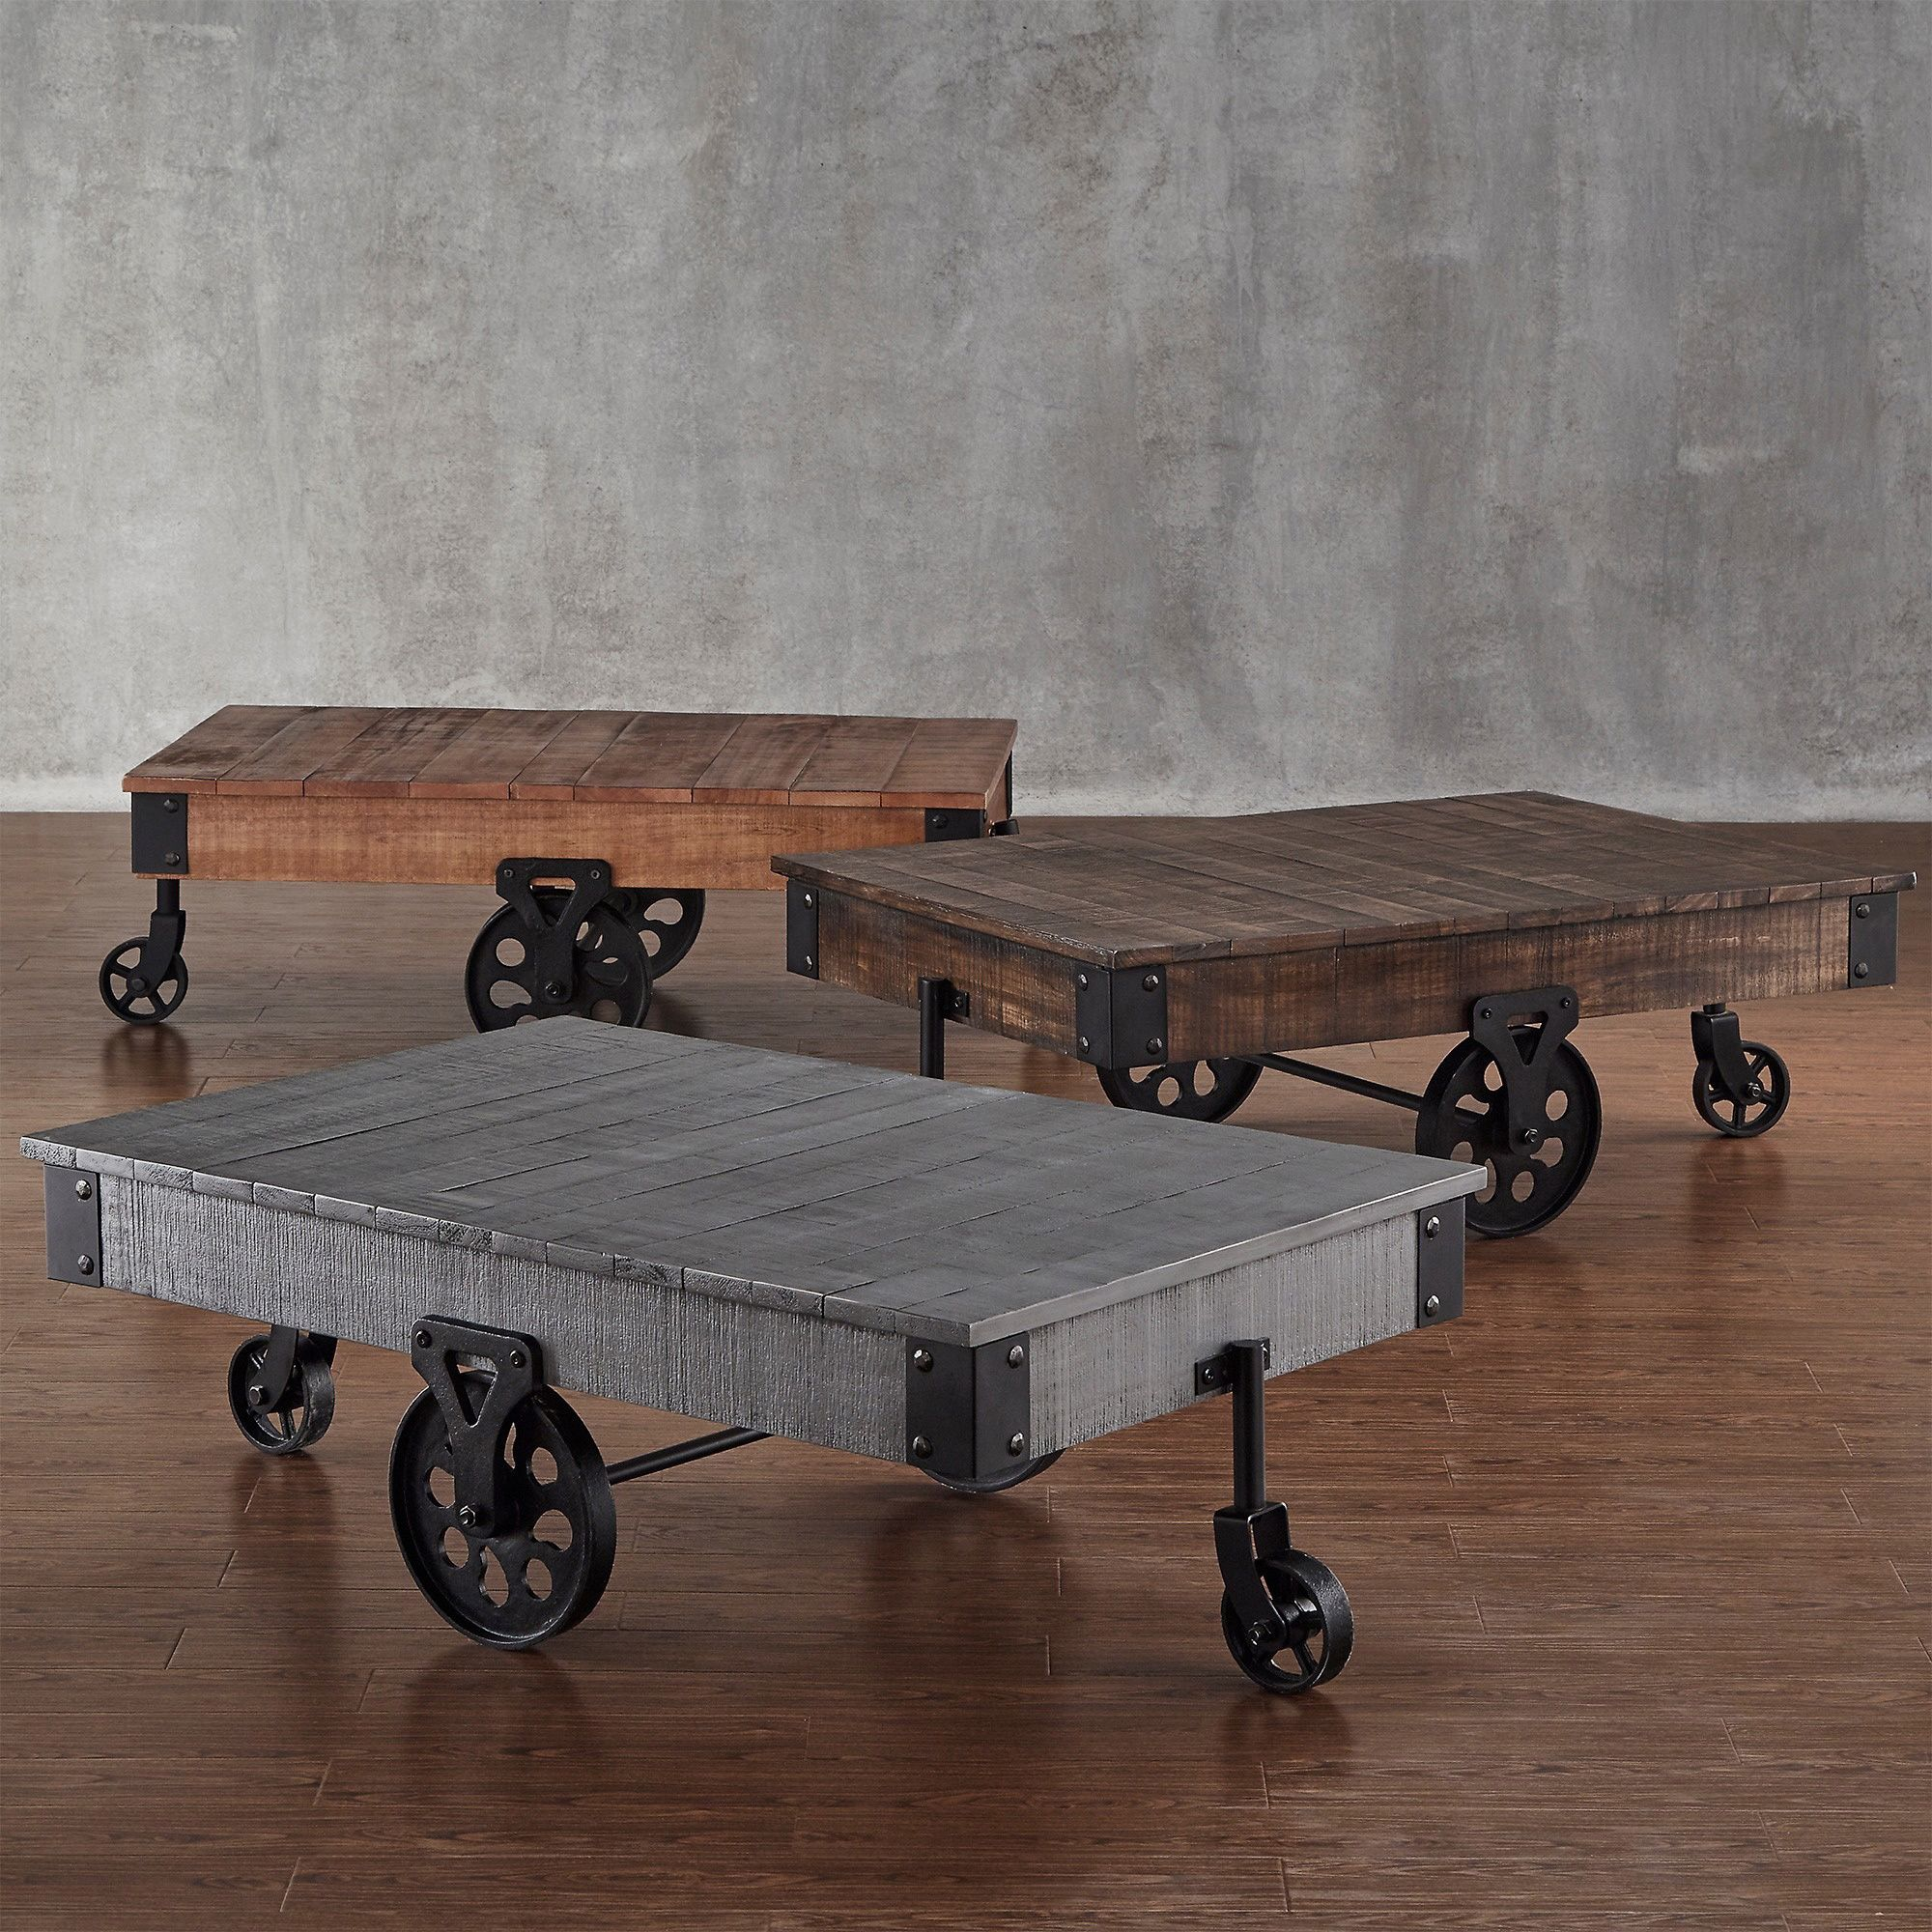 Enjoy A Drink With Friends While Sitting Around This Unique Cocktail Table.  Its Funky Design Resembles A Cart From An Old Factory, Complete With  Weathered ...